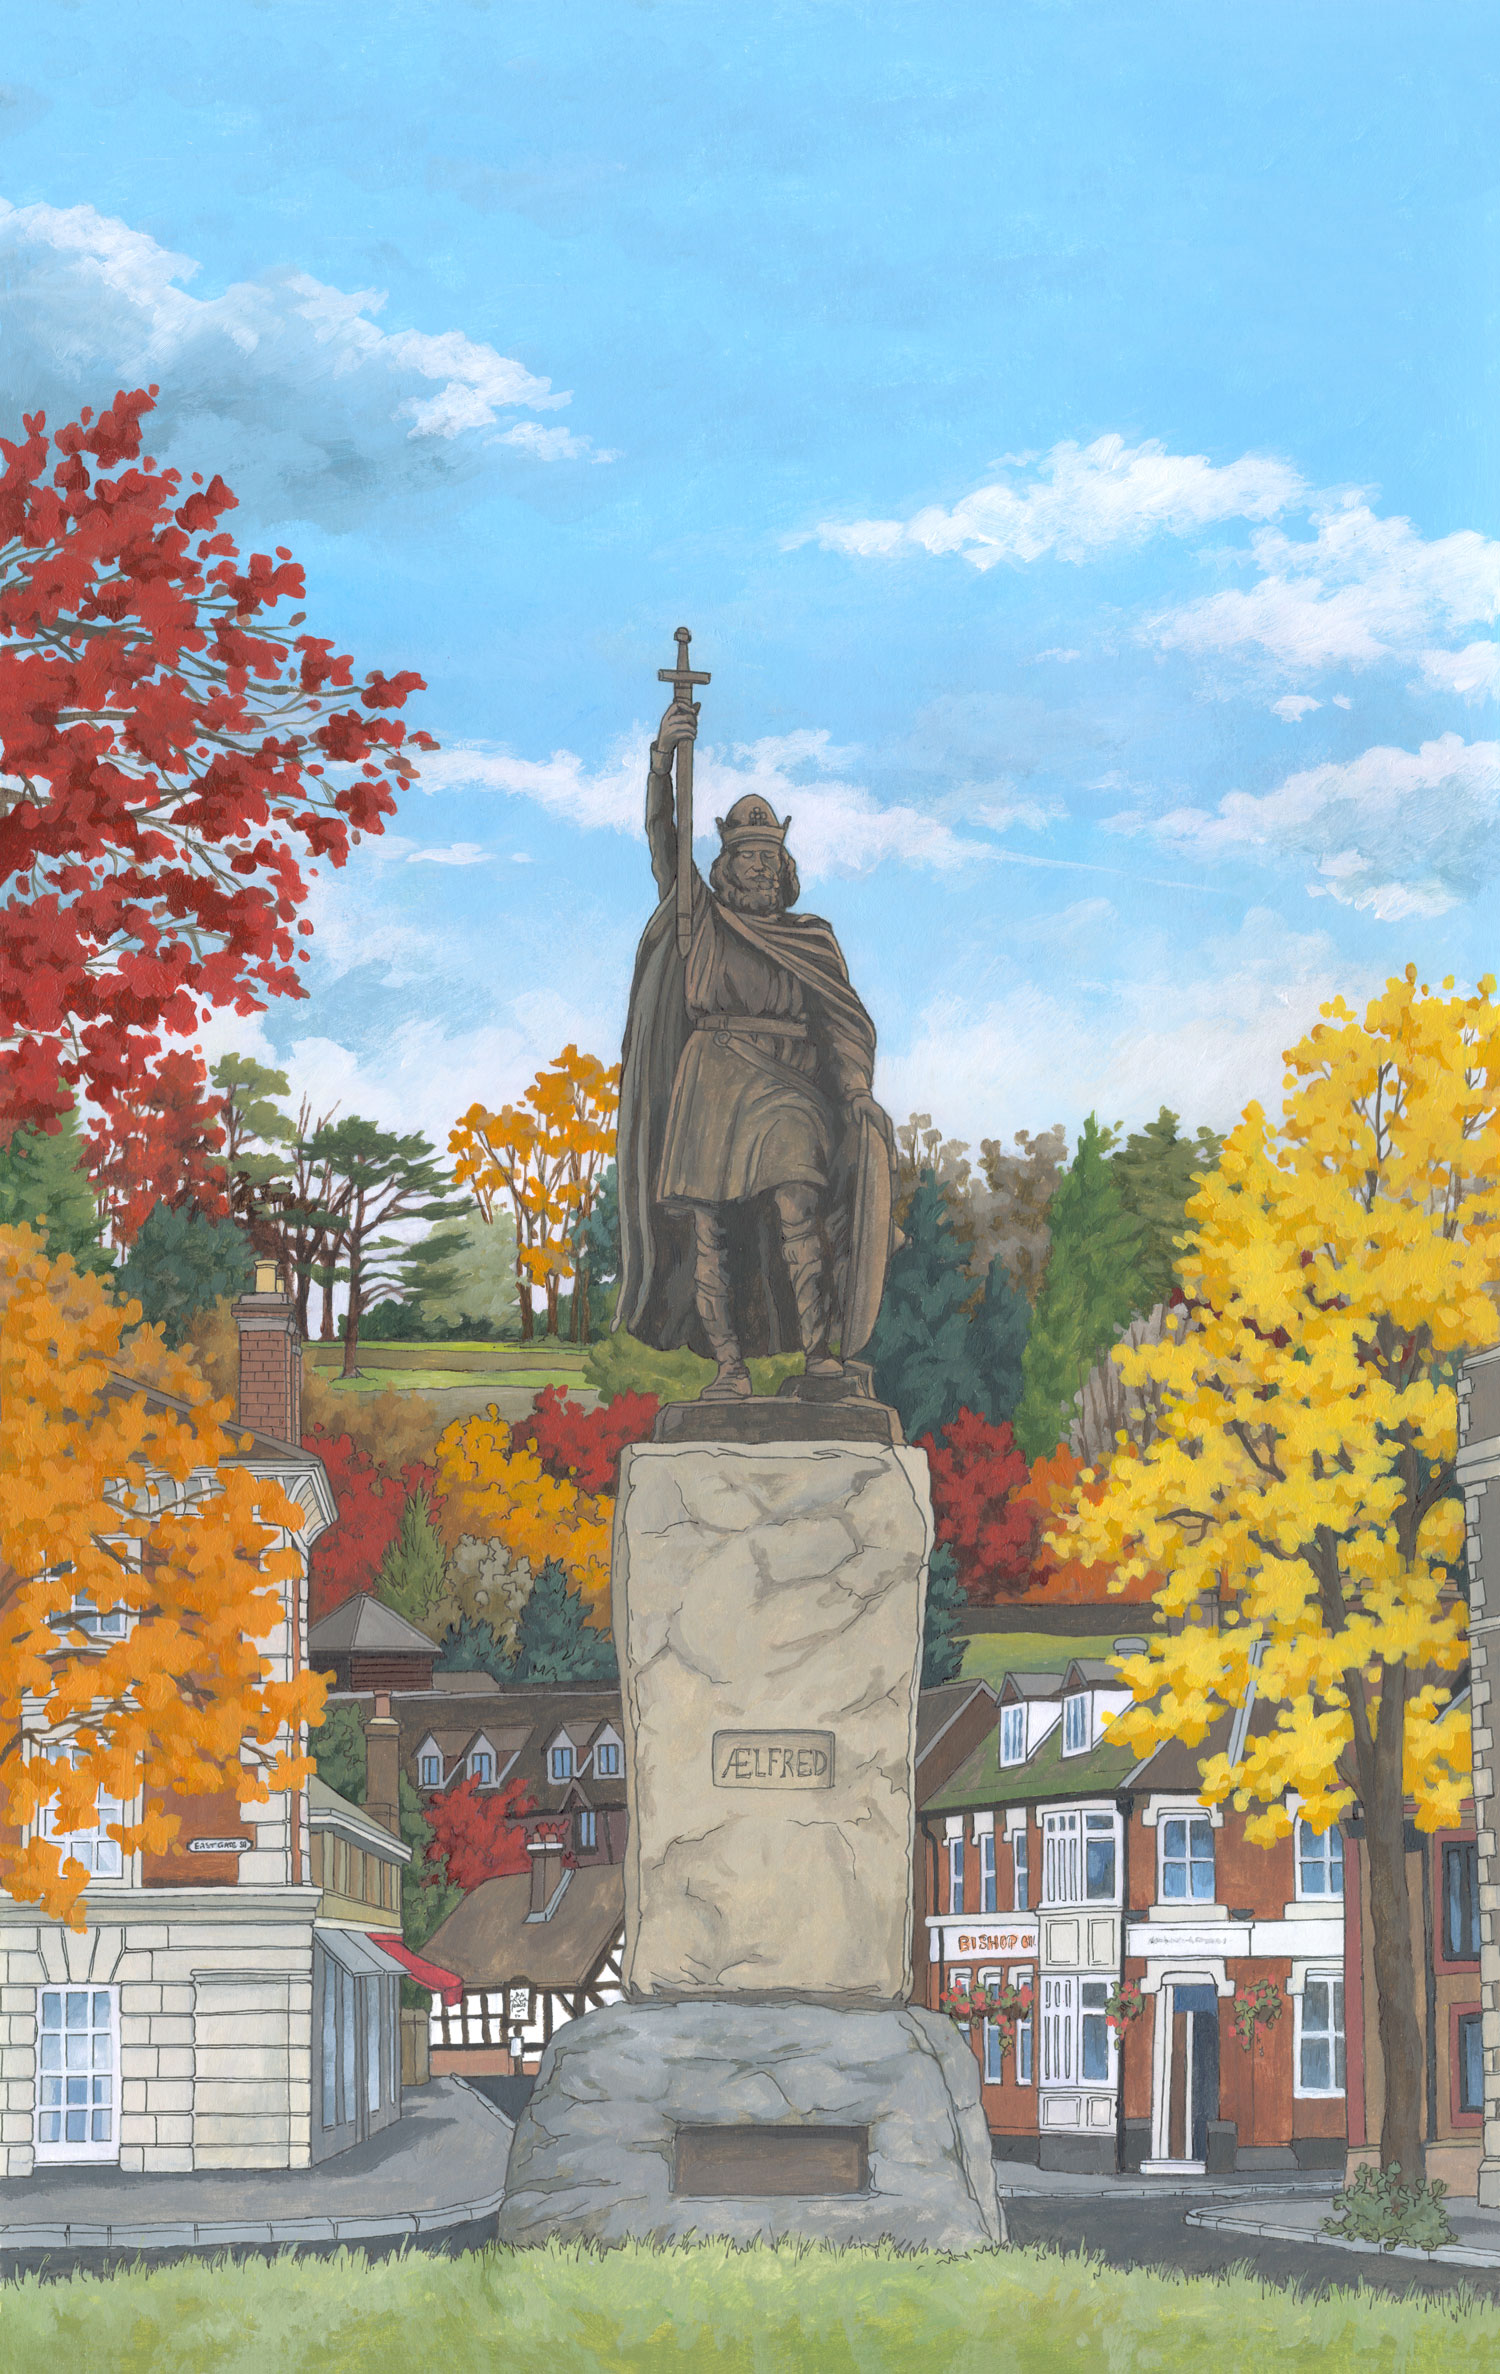 King Alfred in Autumn, Winchester - Illustration by Jonathan Chapman